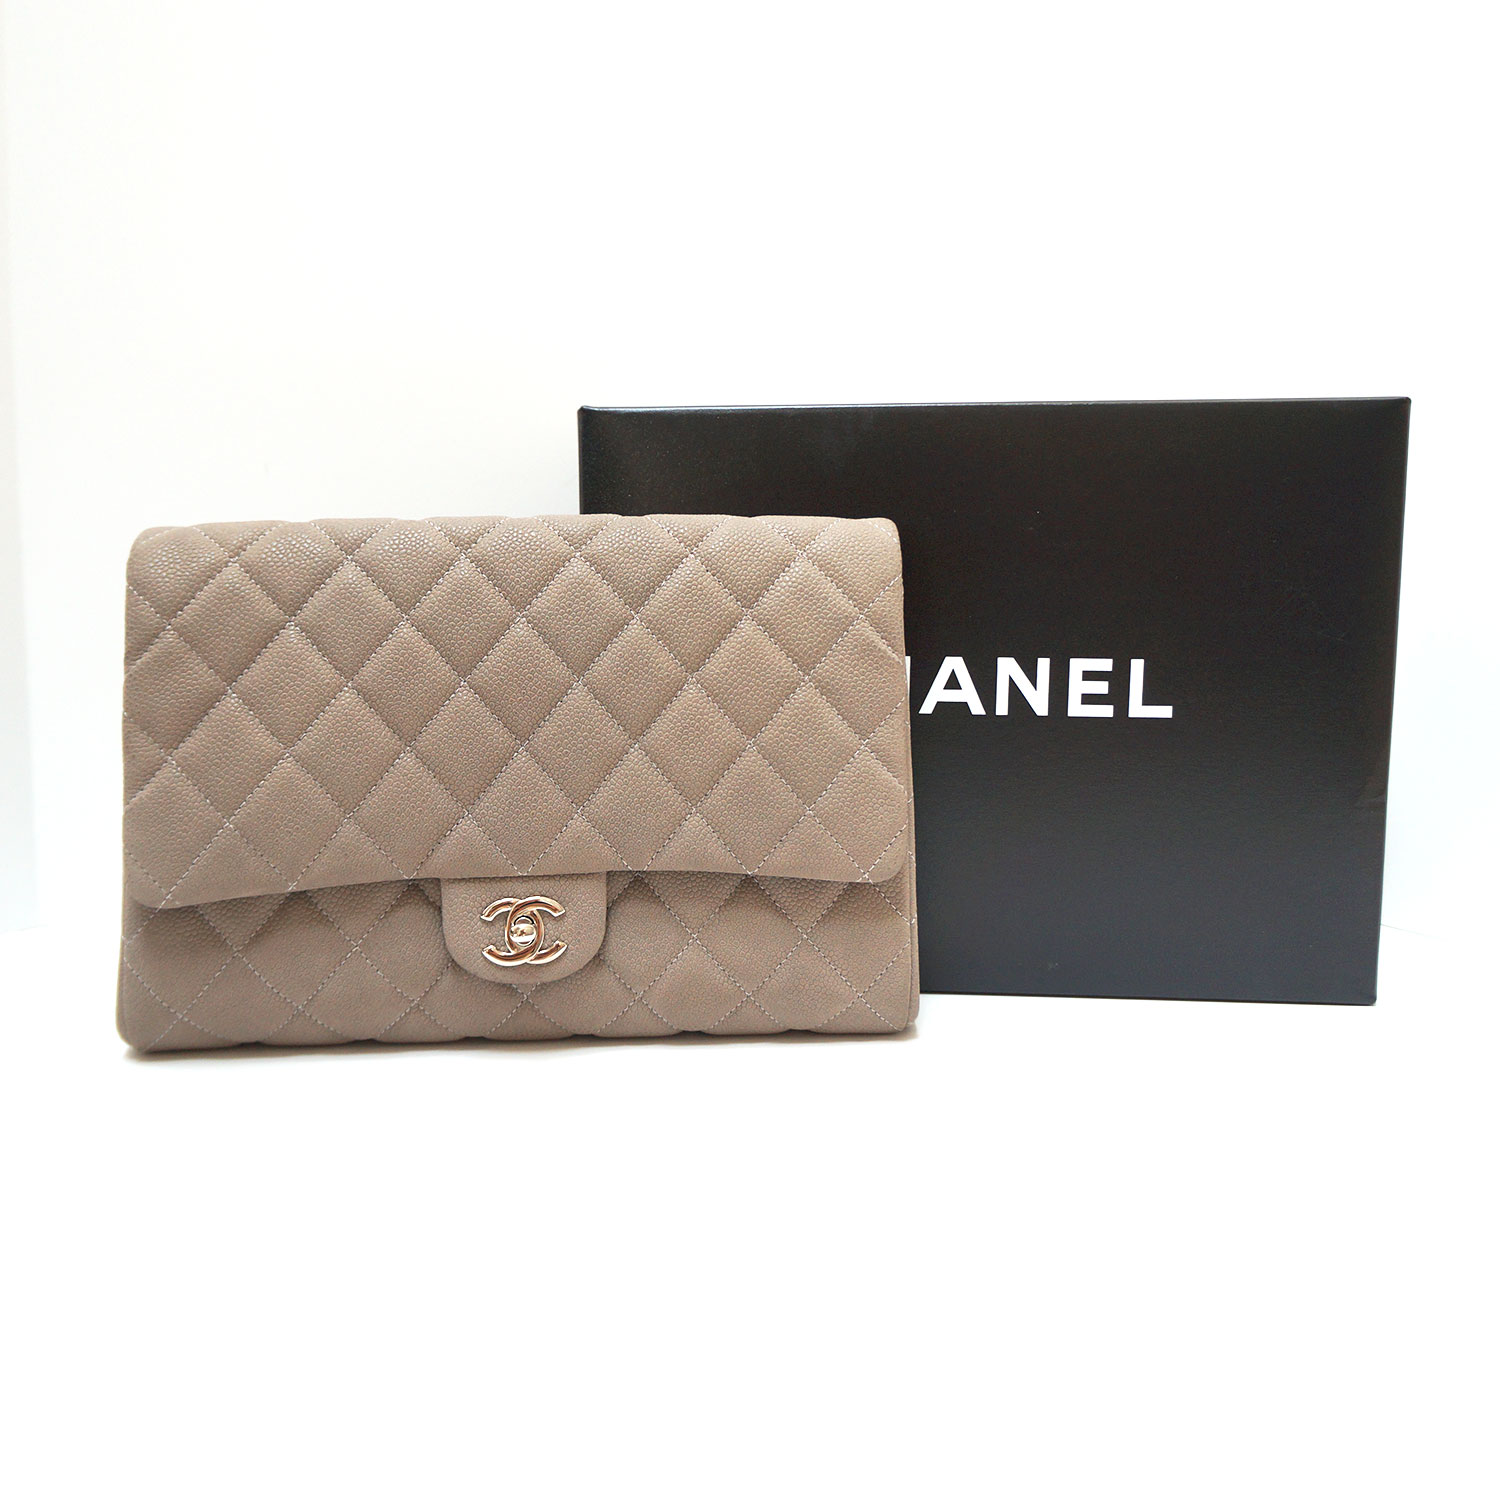 5cfa0e436f3f48 Chanel Grey Matte Caviar Quilted Leather Classic Jumbo Flap Clutch ...